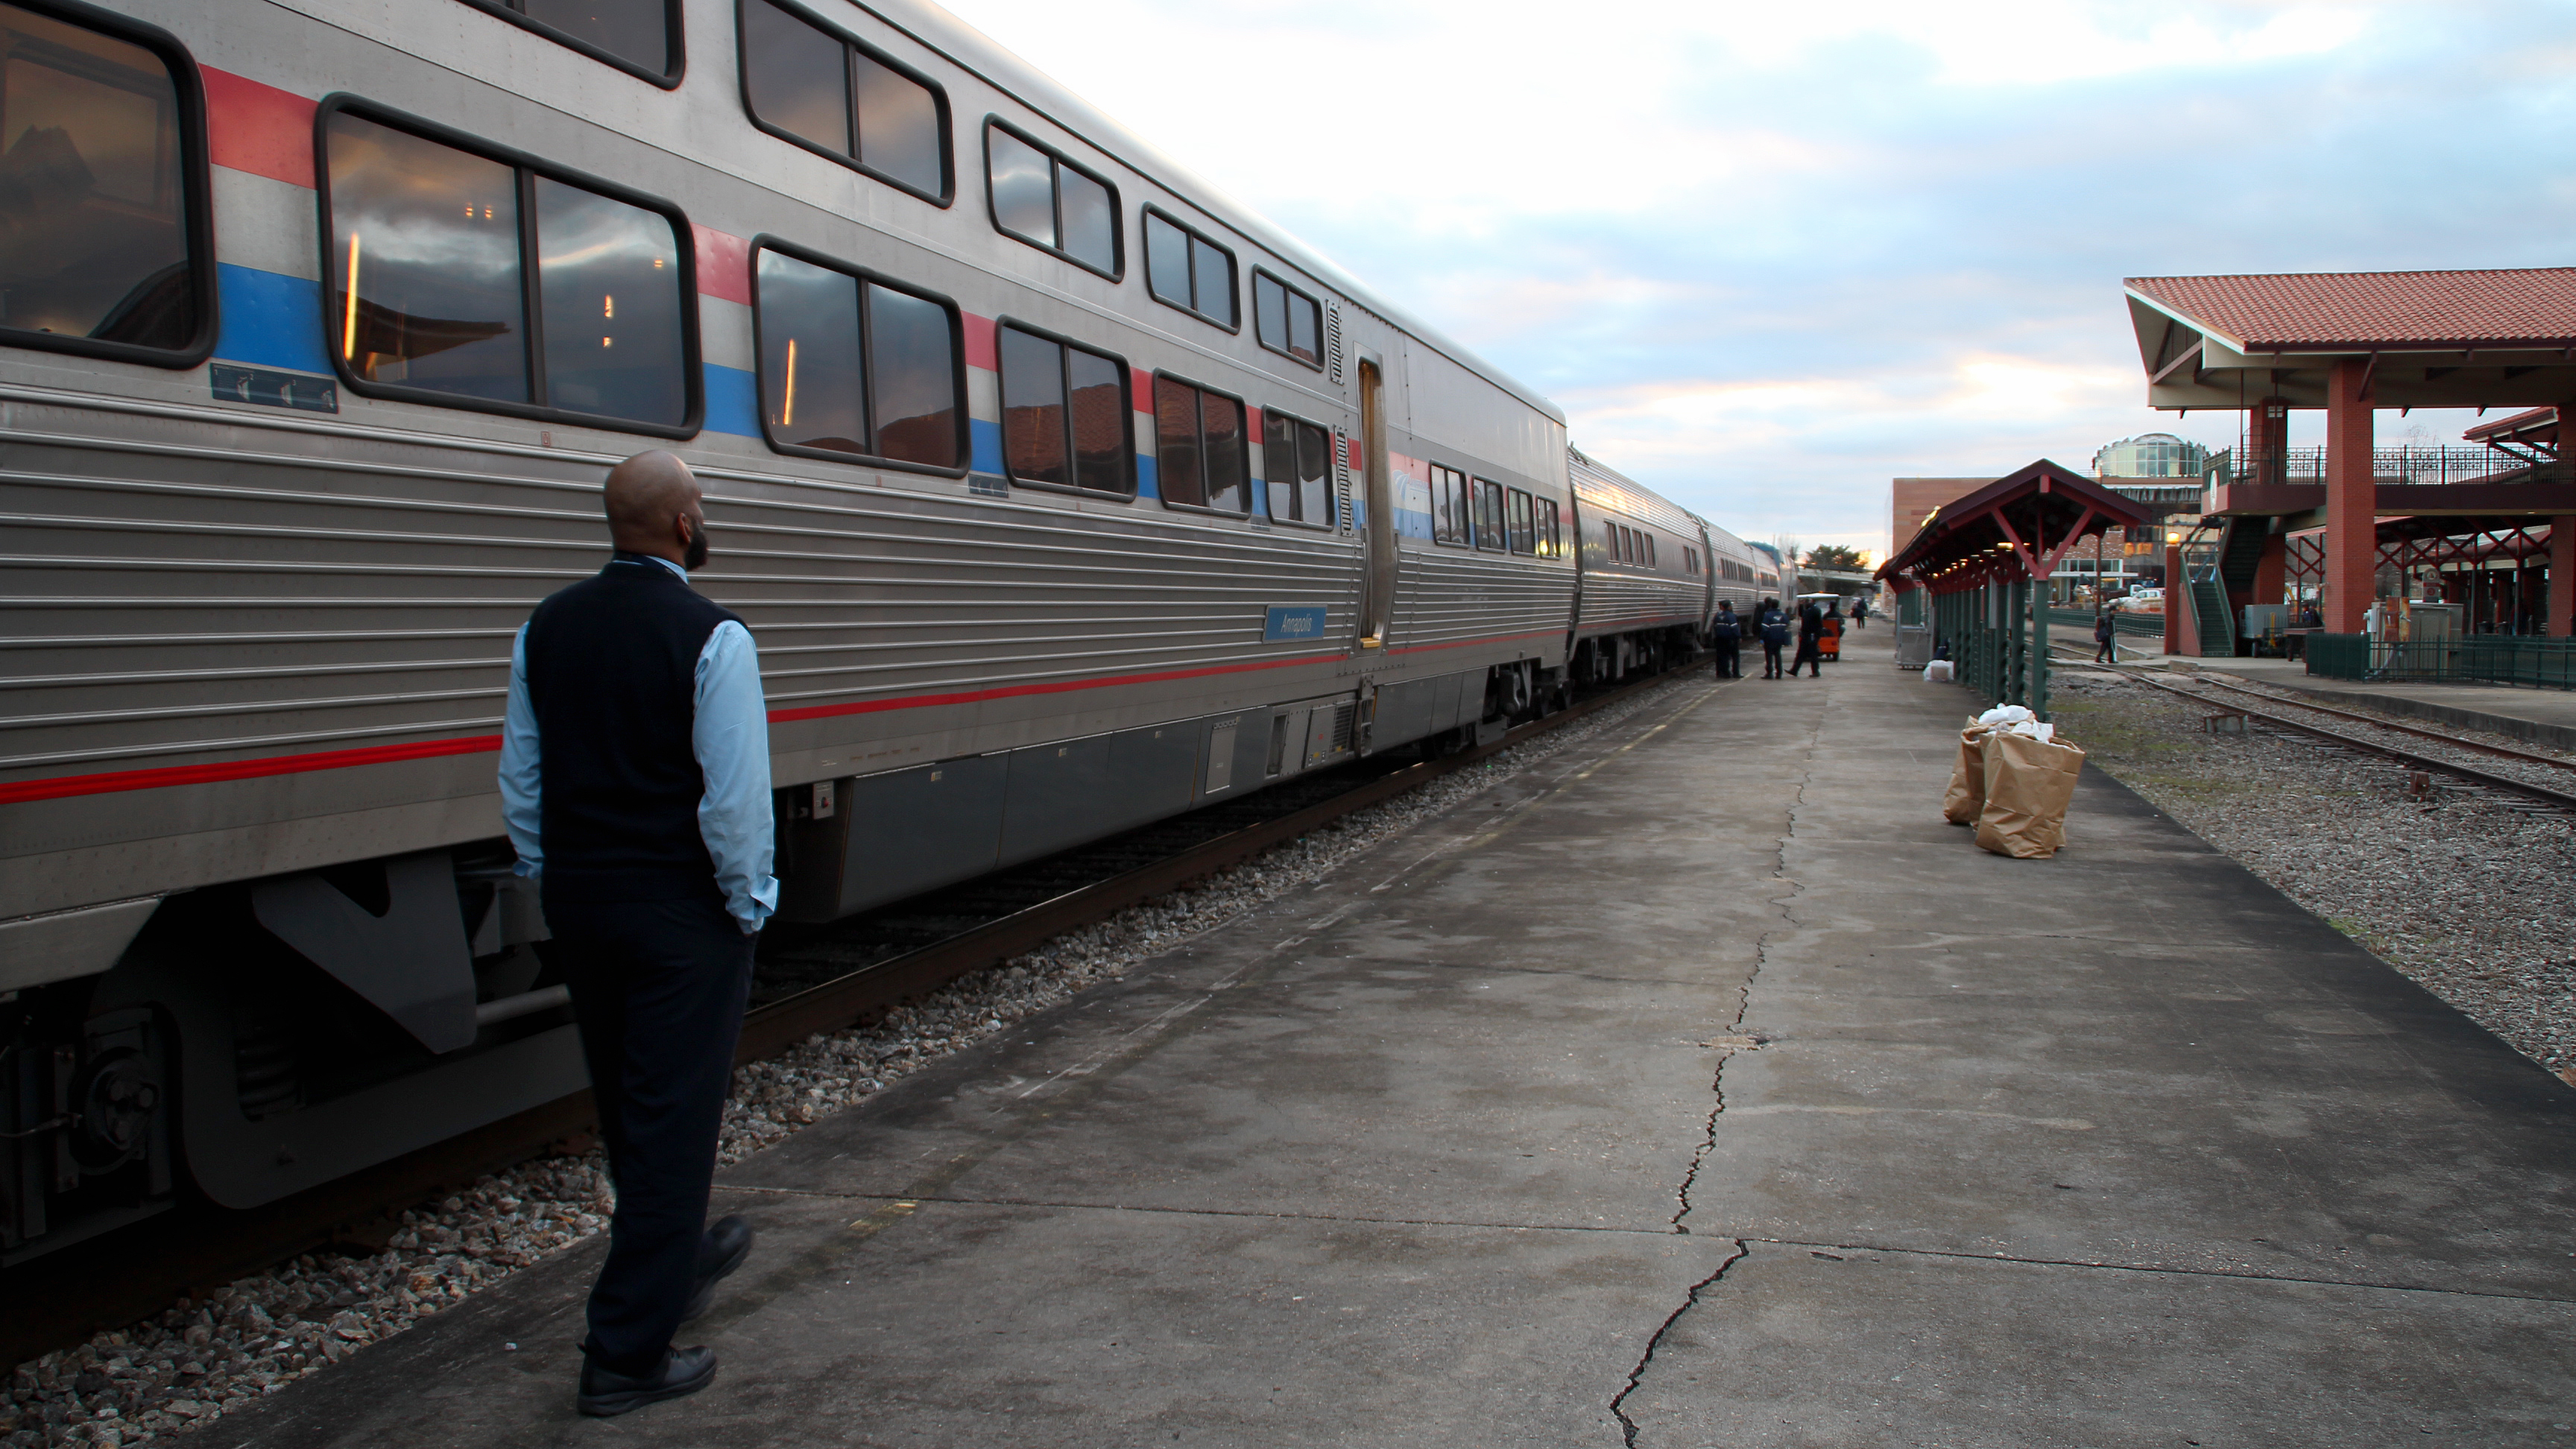 Amtrak S Crescent To New Orleans The Romance Of Rail Travel